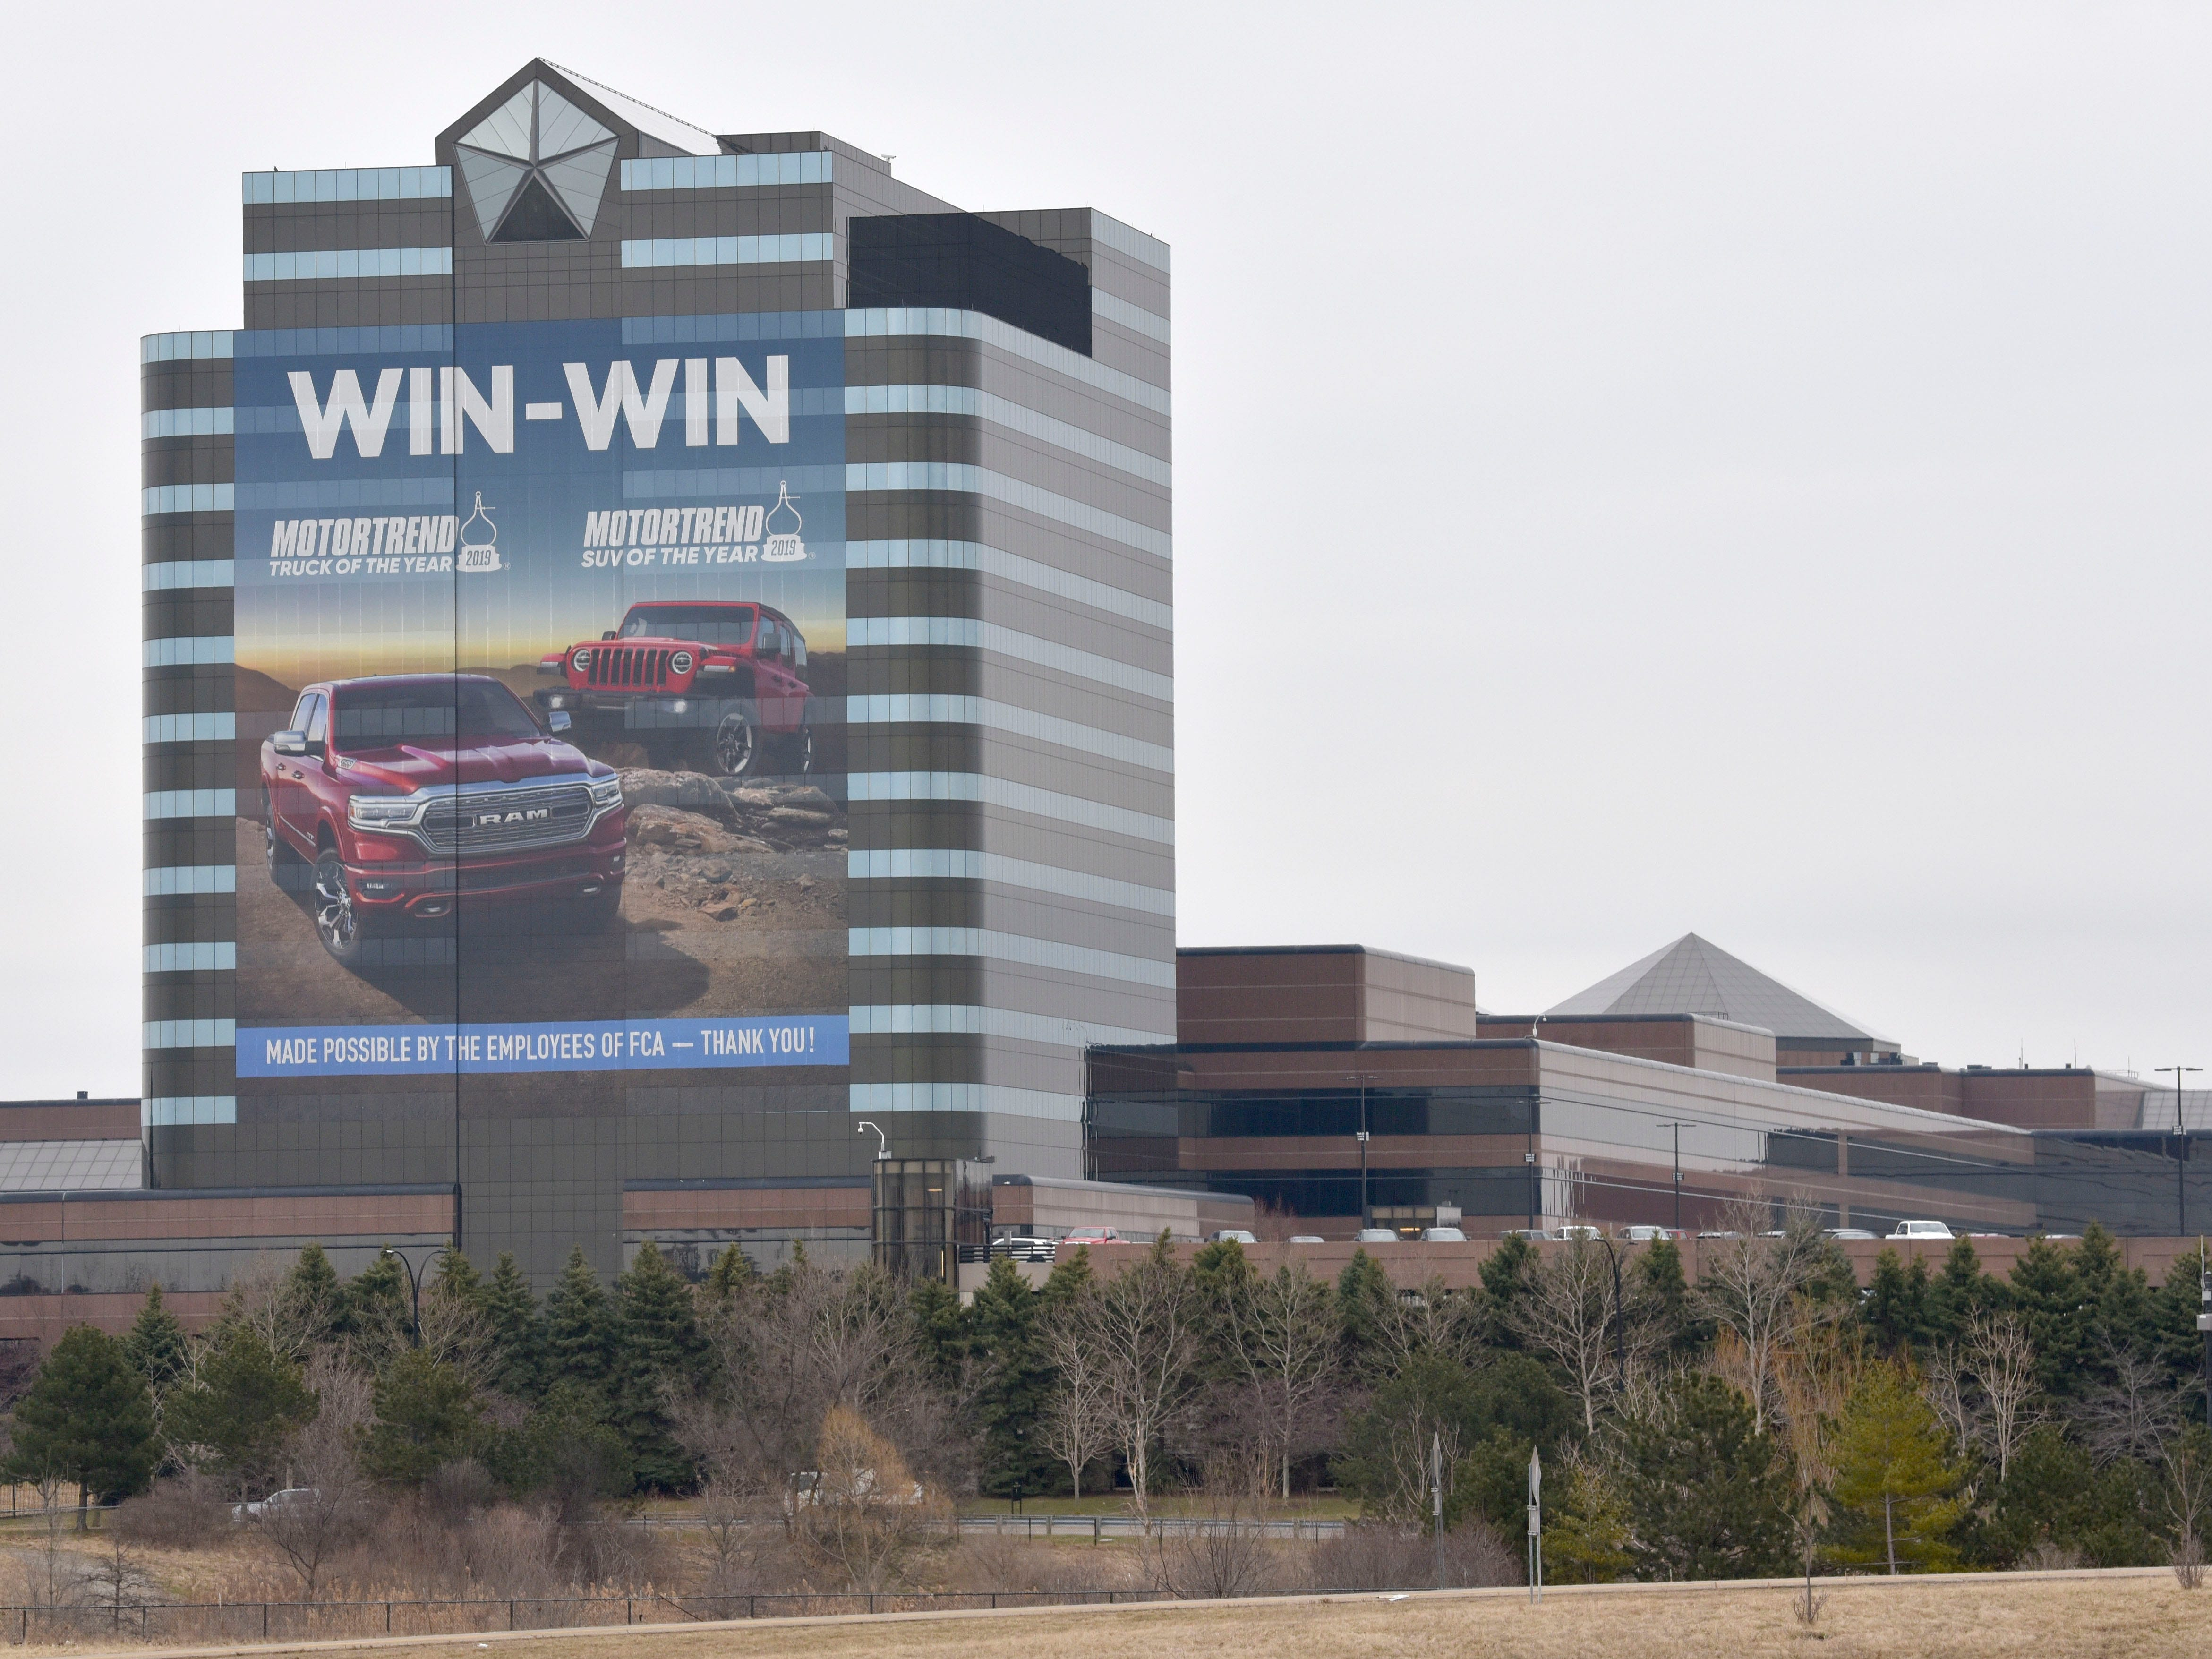 This is FCA US LLC / Chrysler World Headquarters and Technology Center in Auburn Hills. FCA sells or distributes vehicles under the Chrysler, Dodge, Jeep, Ram, FIAT and Alfa Romeo brands.